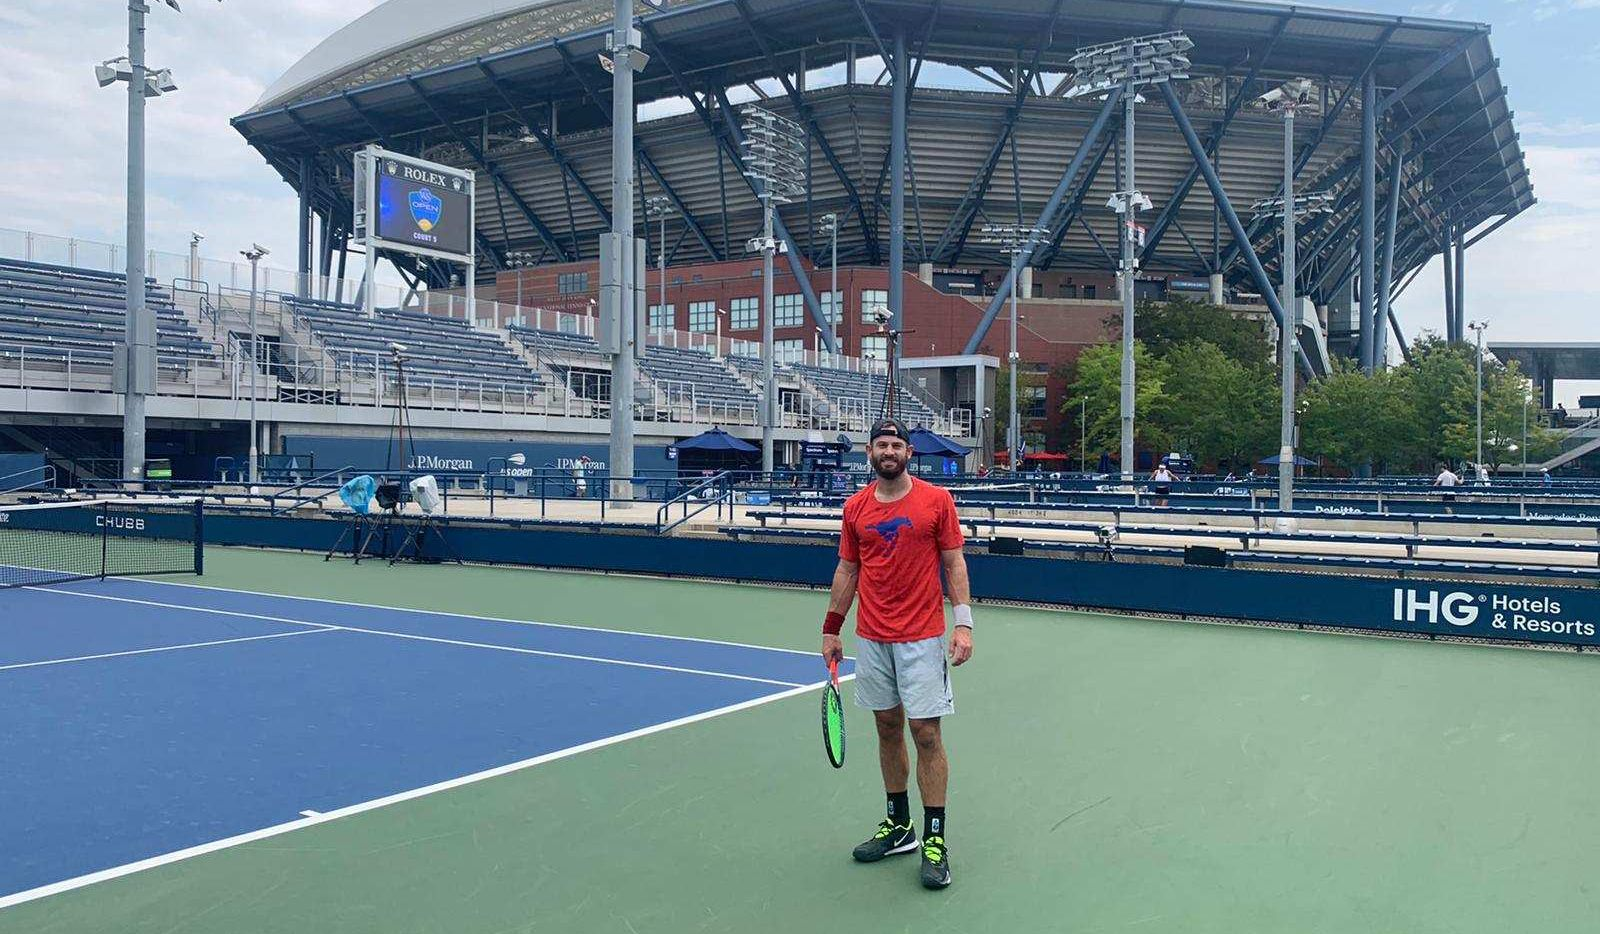 Nate Lammons stands out on a U.S. Open court, donning an SMU shirt. He's standing in front of the famed Arthur Ashe Stadium. Lammons played in the unique 2020 U.S Open.